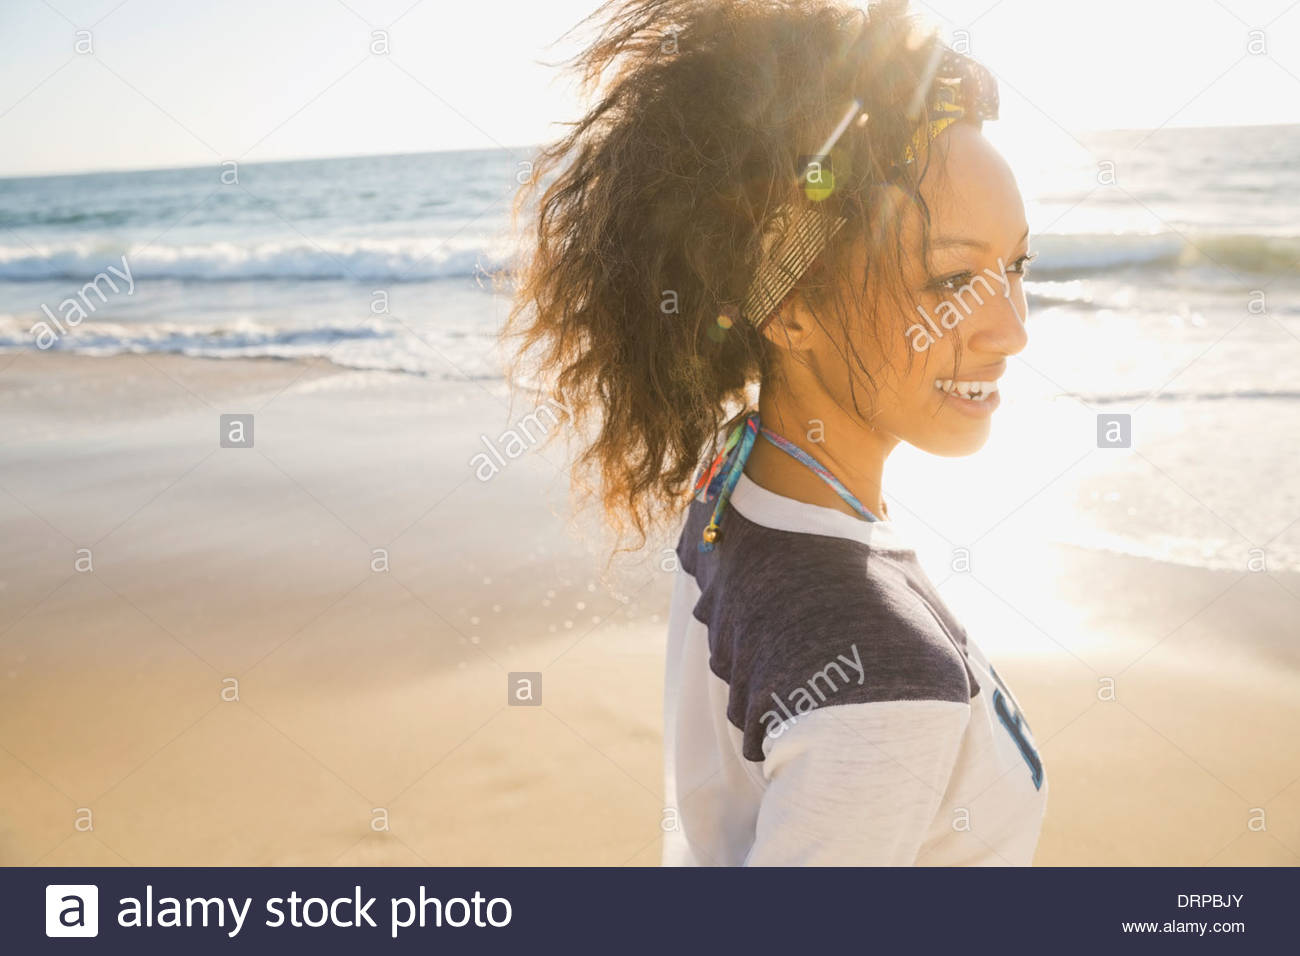 Woman spending leisure time at beach - Stock Image